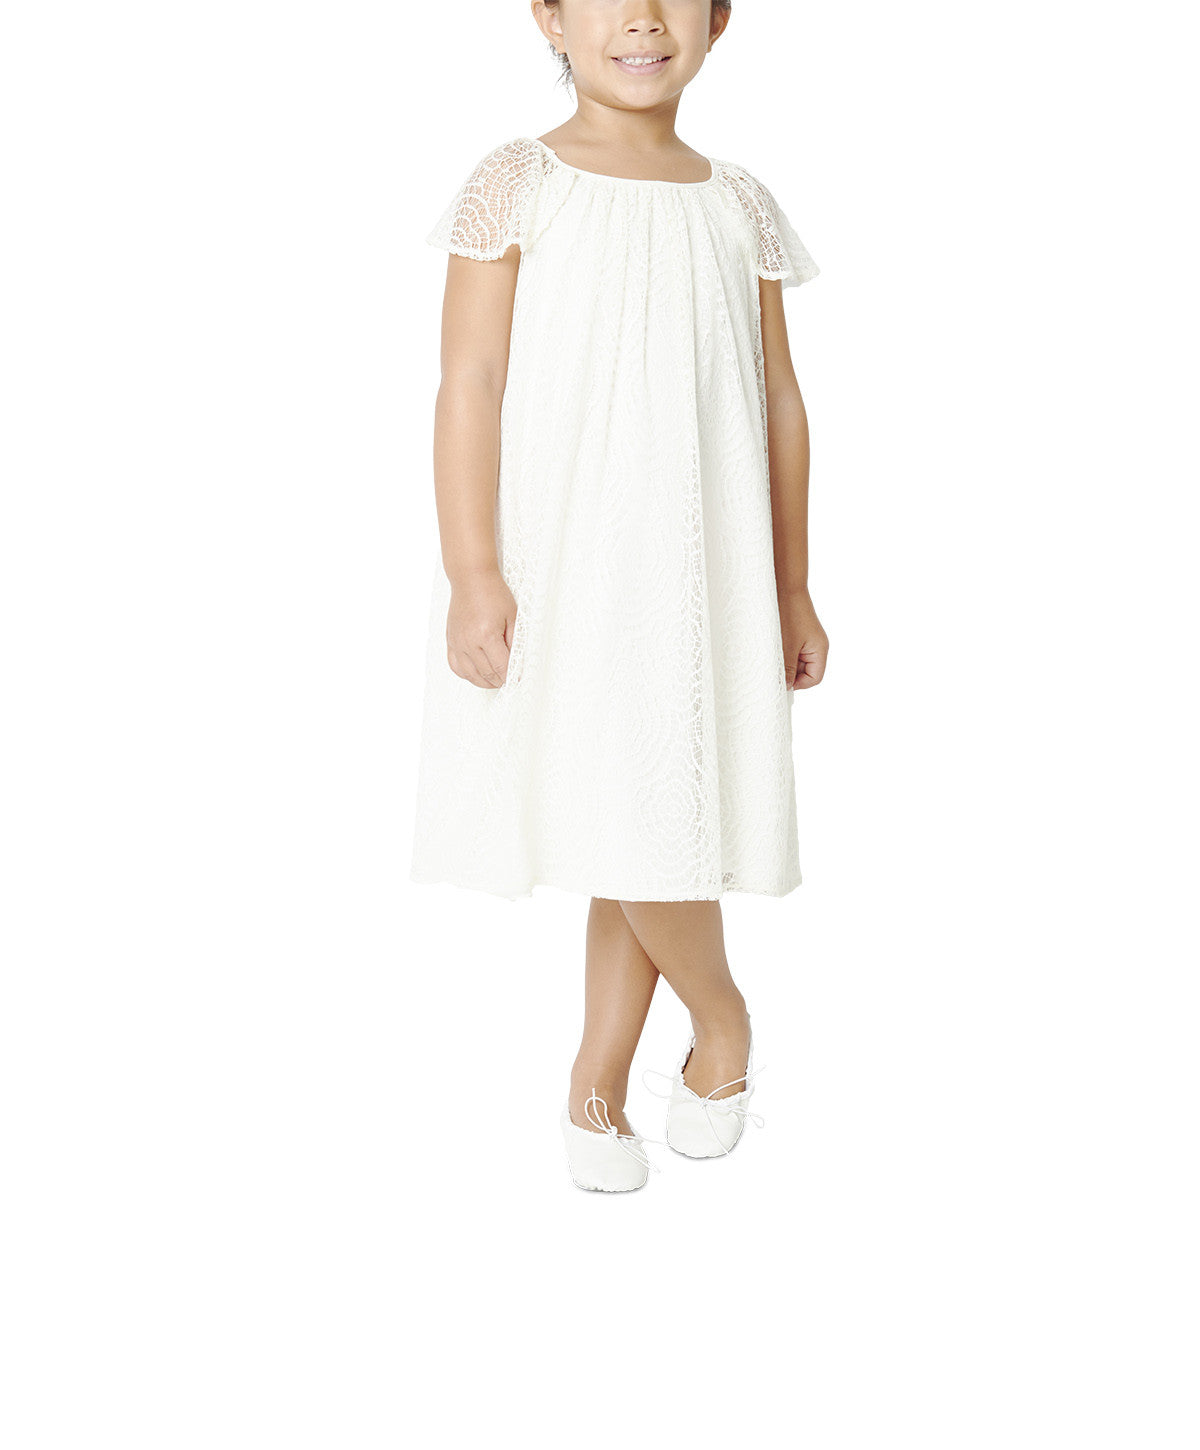 Joanna August Flower Girl Dress Anabel Lace - Sample